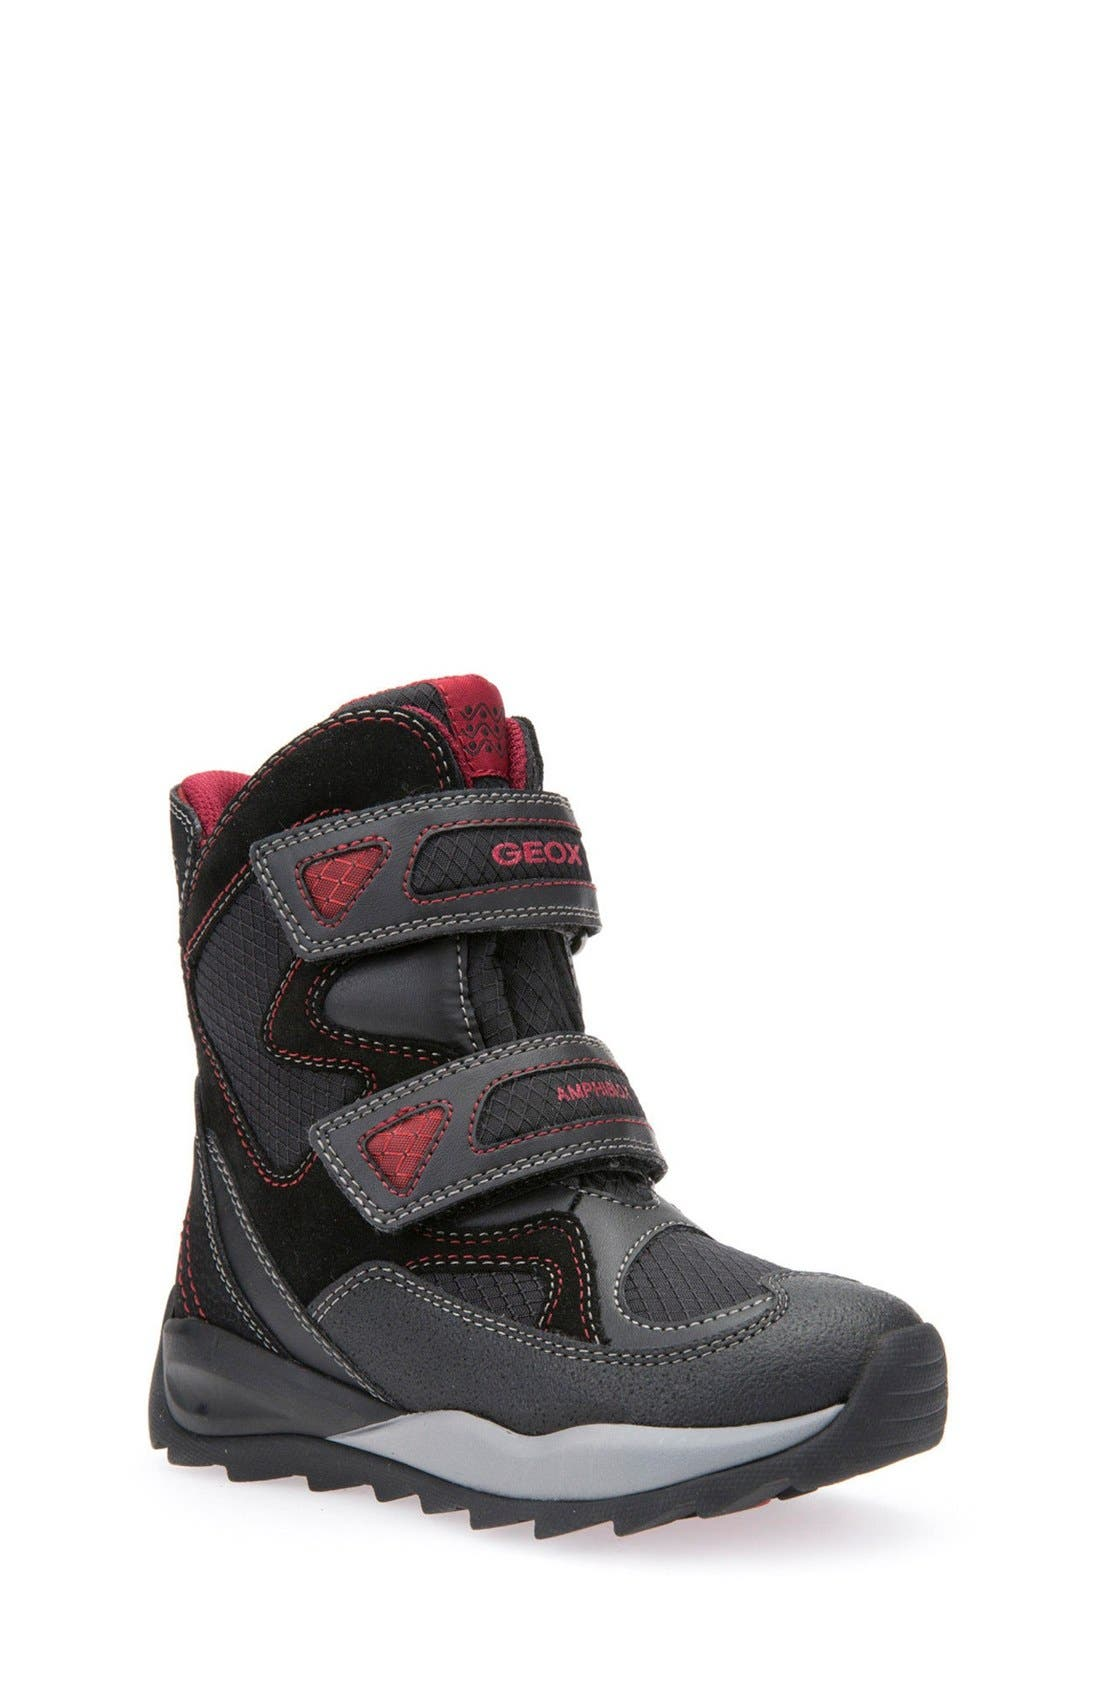 Geox 'Orizont ABX' Waterproof Boot (Toddler, Little Kid & Big Kid)